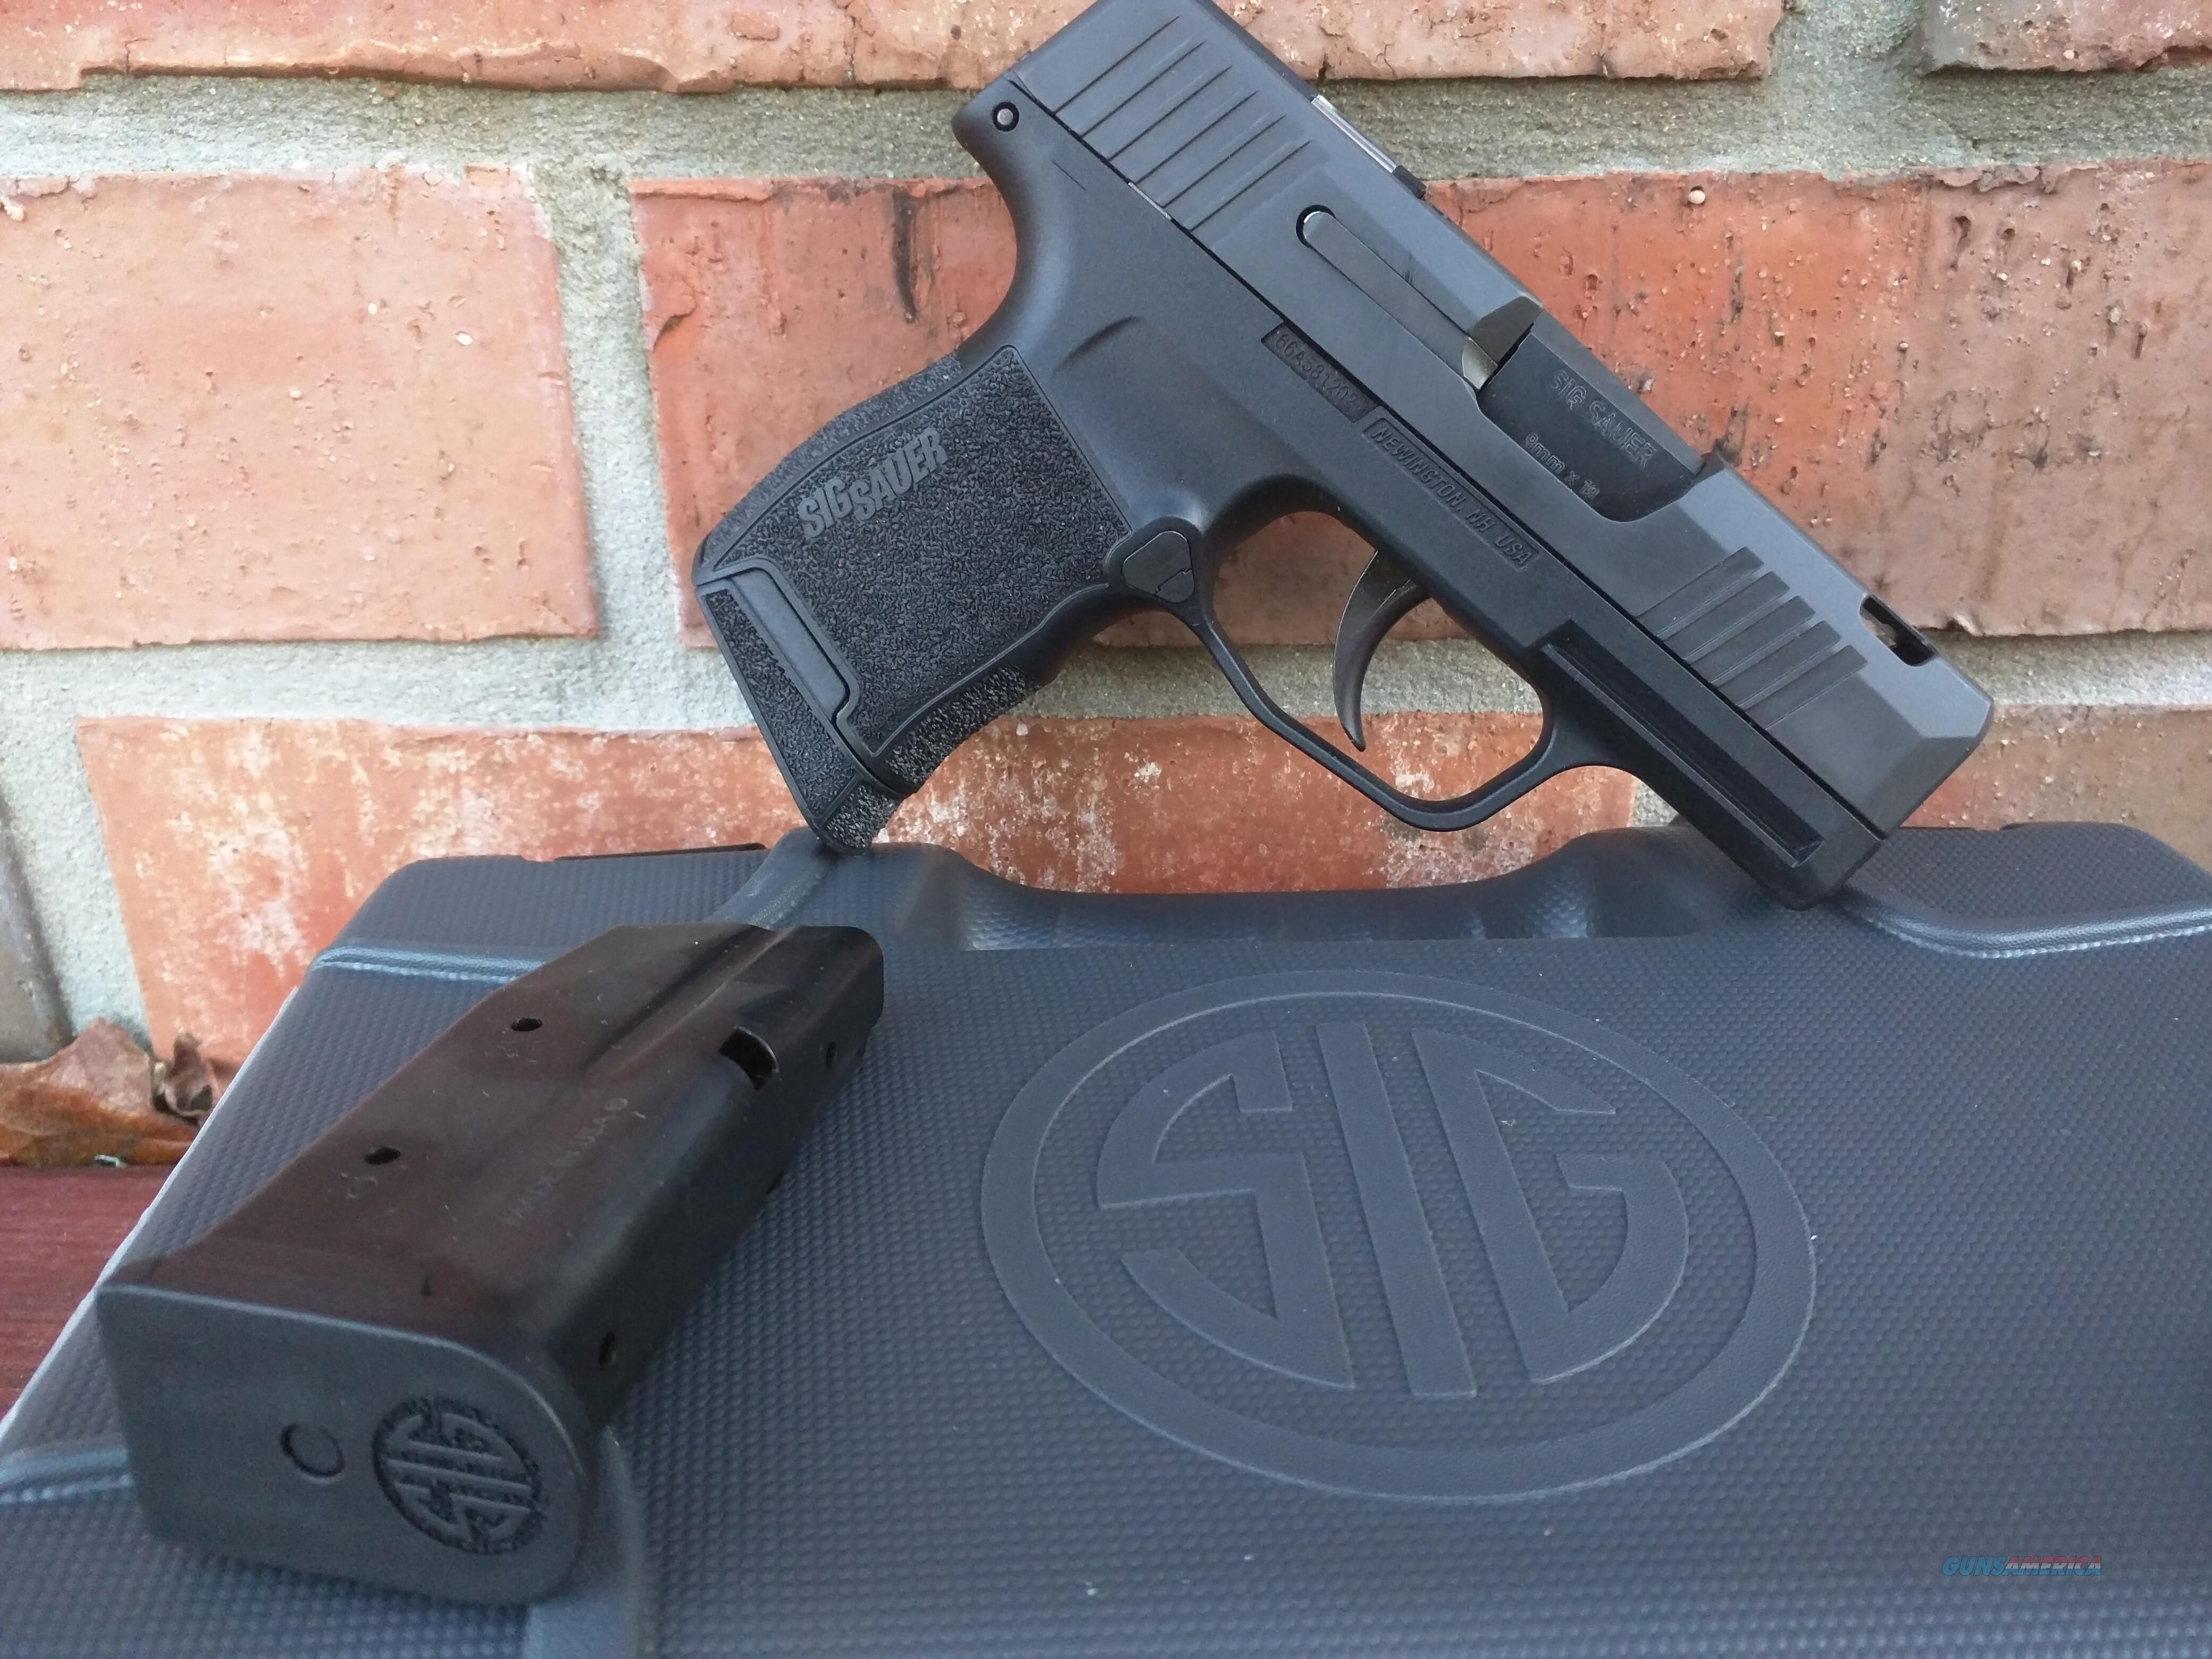 SIG P365 SAS C 9mm Ported Barrel With FT Bullseye Built in Slide Green Dot Sight (2) 10 Rd Mags, FREE LAYAWAY!! IN STOCK!!  Guns > Pistols > Sig - Sauer/Sigarms Pistols > P365